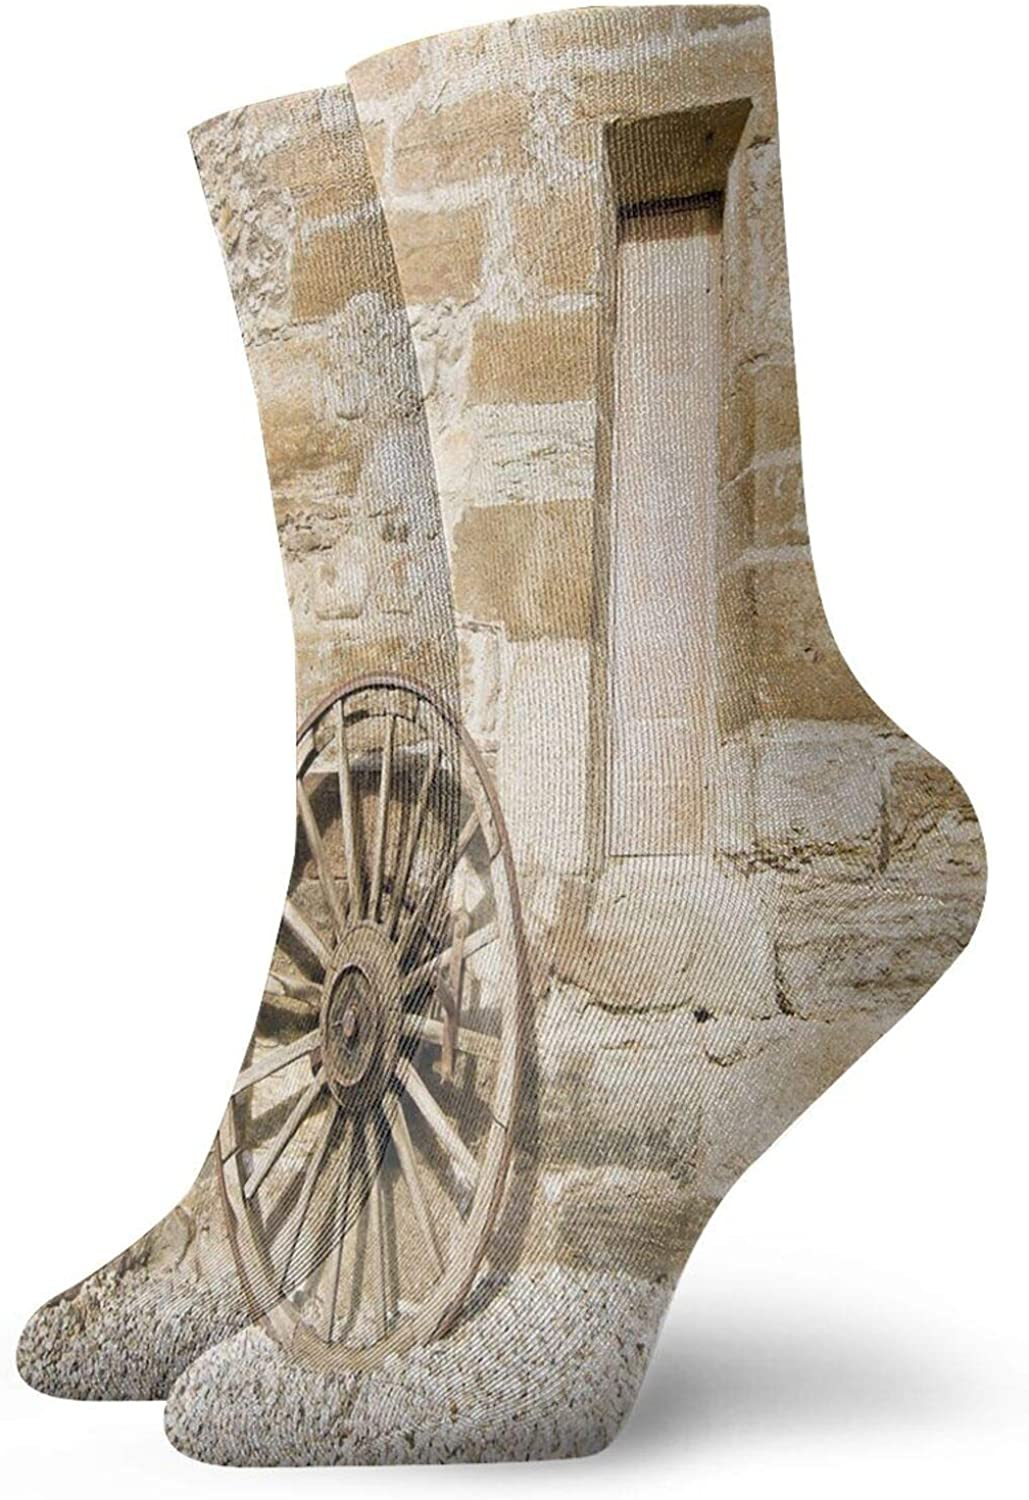 Compression High Socks-Ancient Rural Facade With Old Wheel Traditional Country House Best for Running,Athletic,Hiking,Travel,Flight